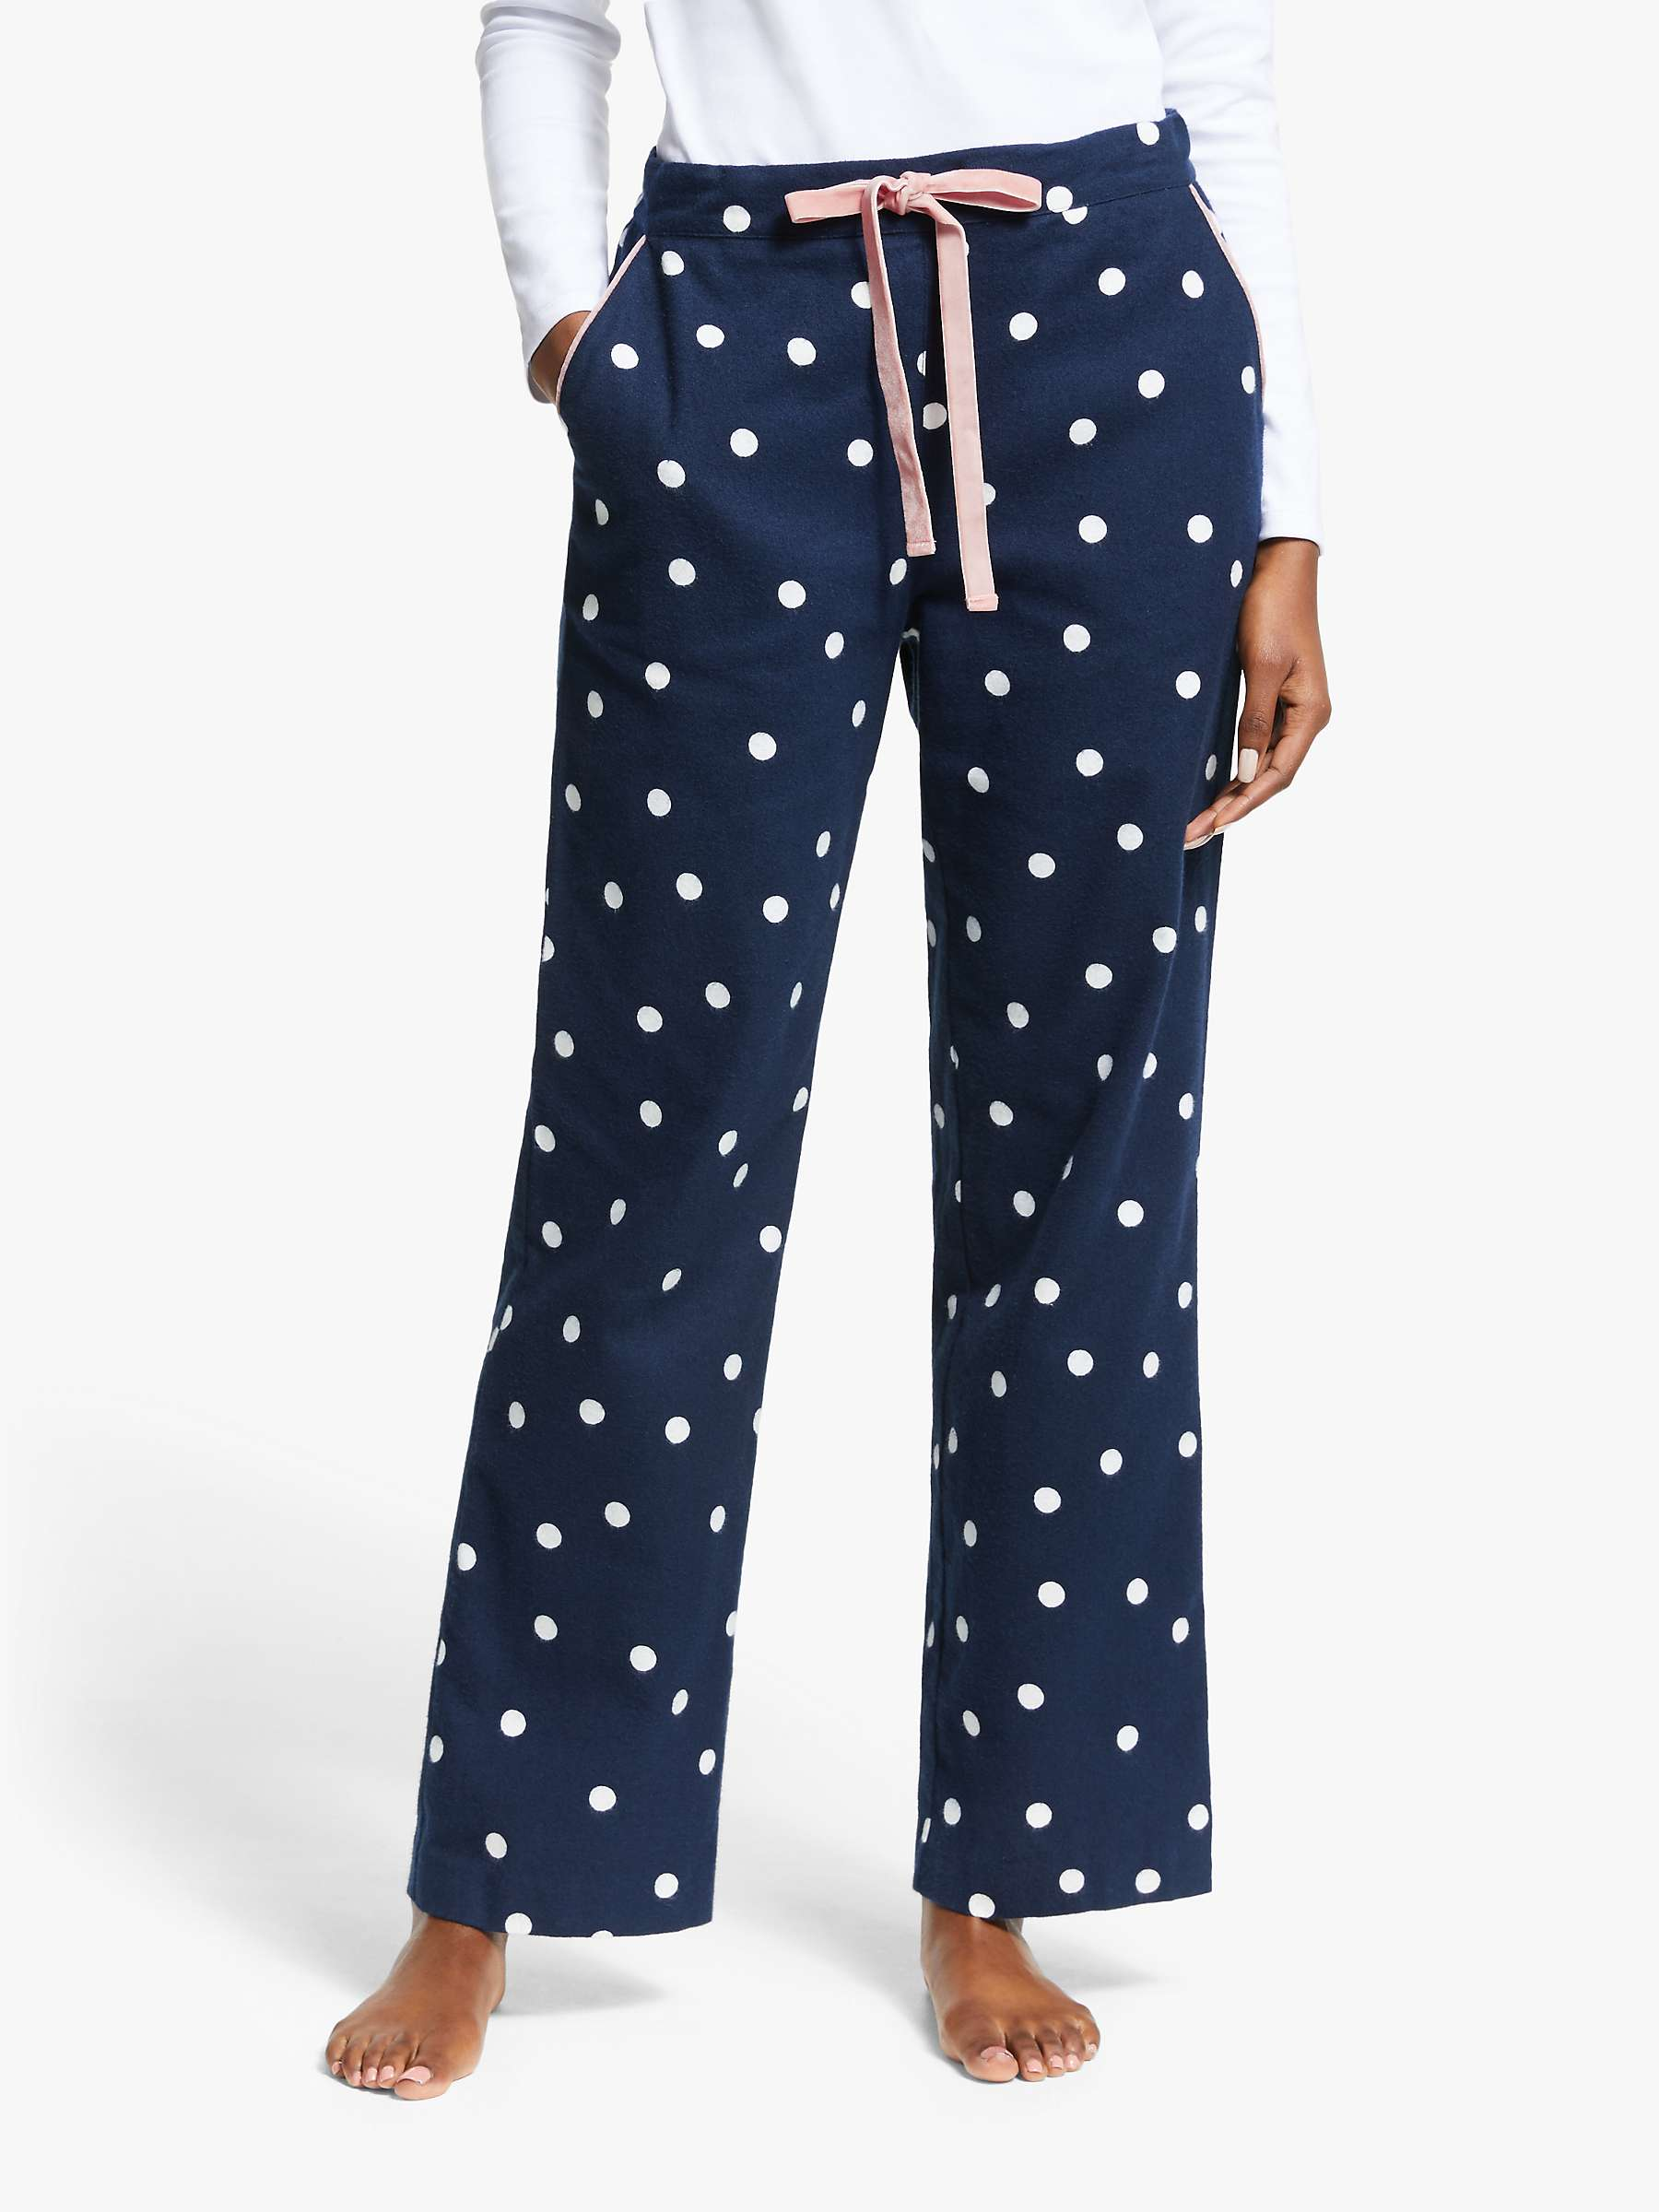 Boden Vanessa Cosy Spotted Pyjama Bottoms, French Navy by Boden